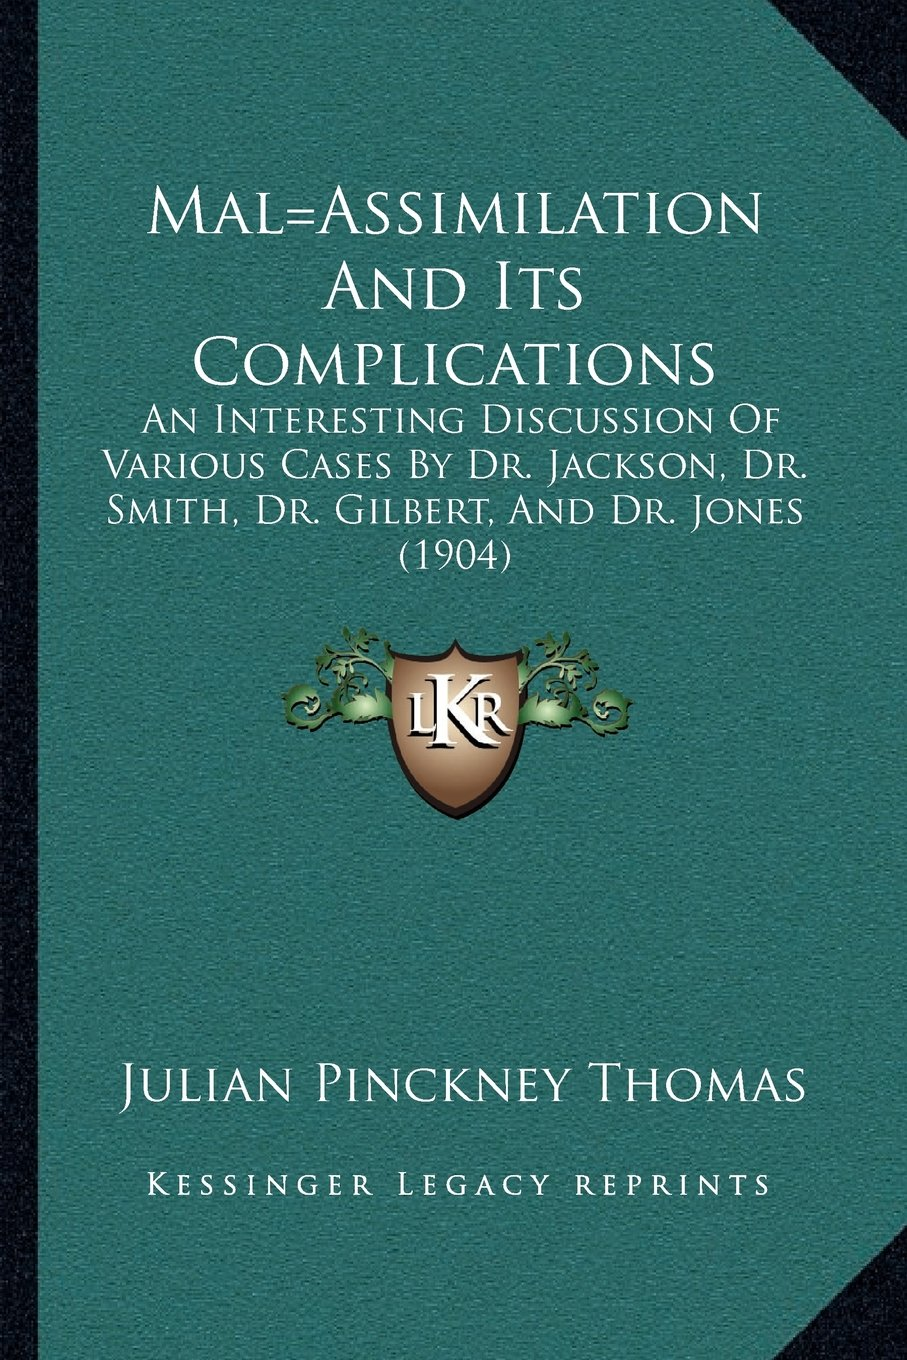 Download Mal=Assimilation And Its Complications: An Interesting Discussion Of Various Cases By Dr. Jackson, Dr. Smith, Dr. Gilbert, And Dr. Jones (1904) ebook